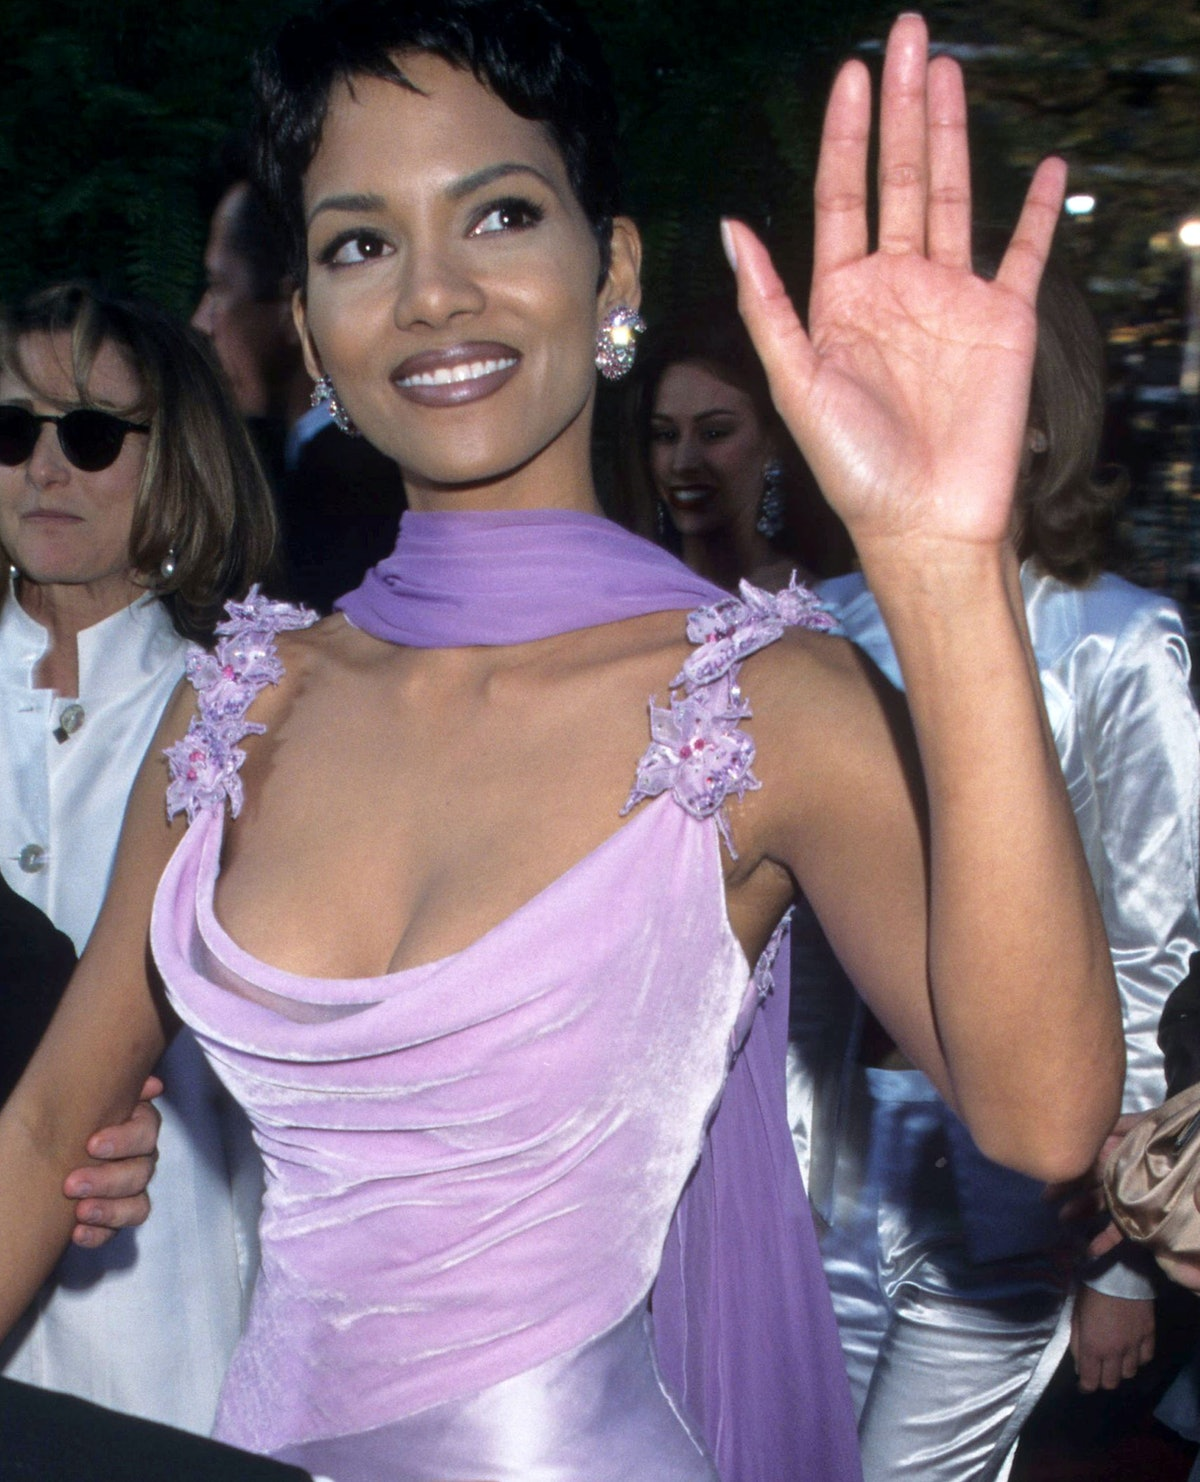 Halle Berry rocks her iconic pixie cut at the Oscars in 1996.